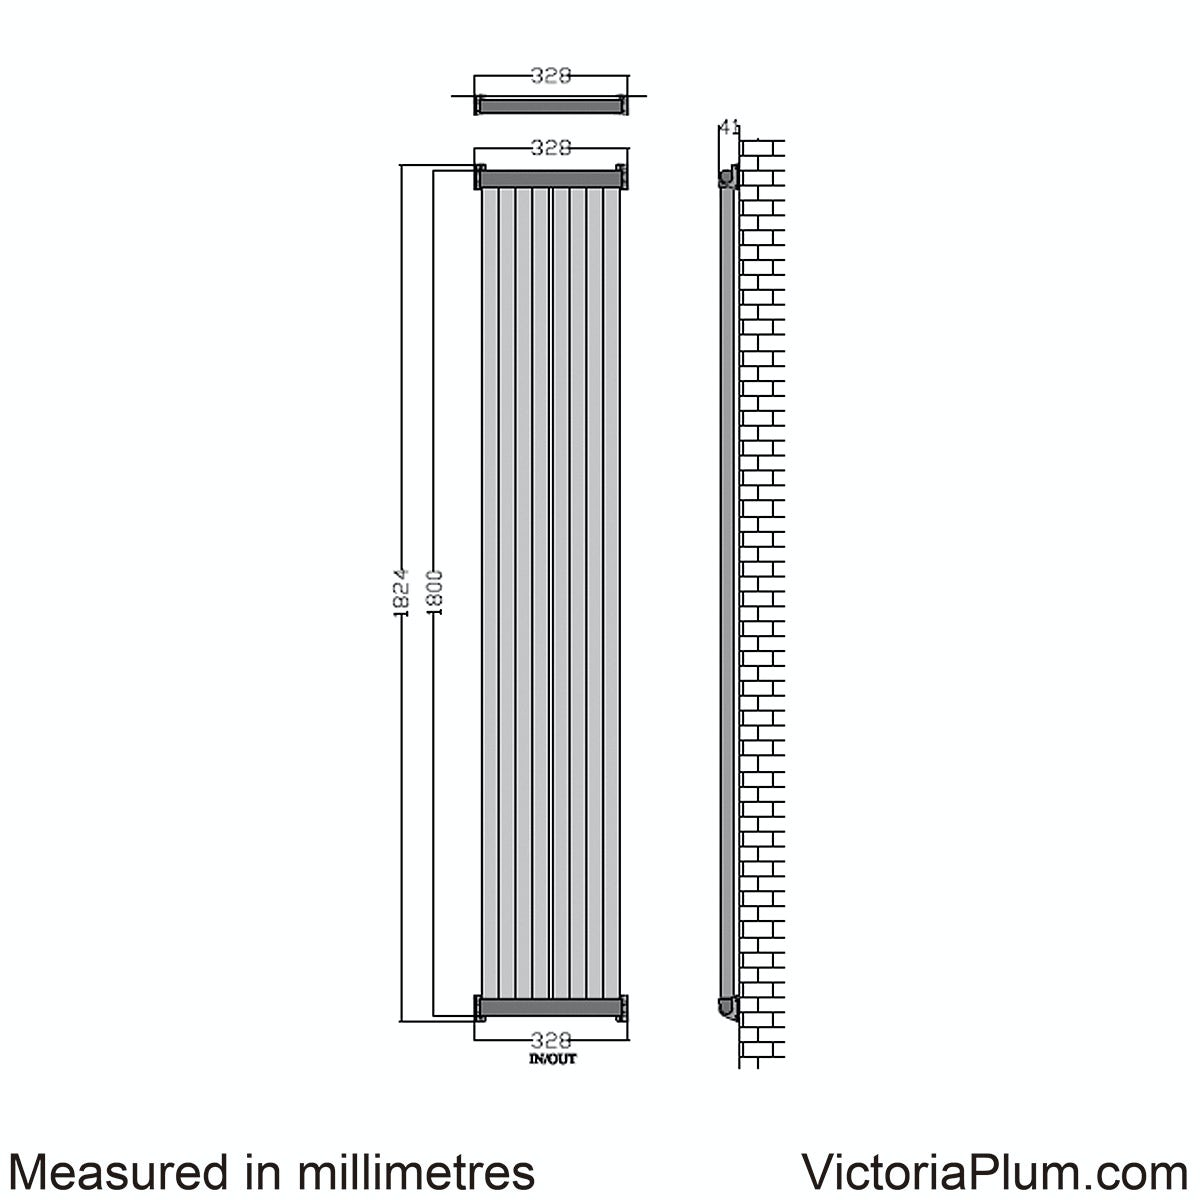 Dimensions for Mode Zephyra anthracite vertical radiator 1800 x 328